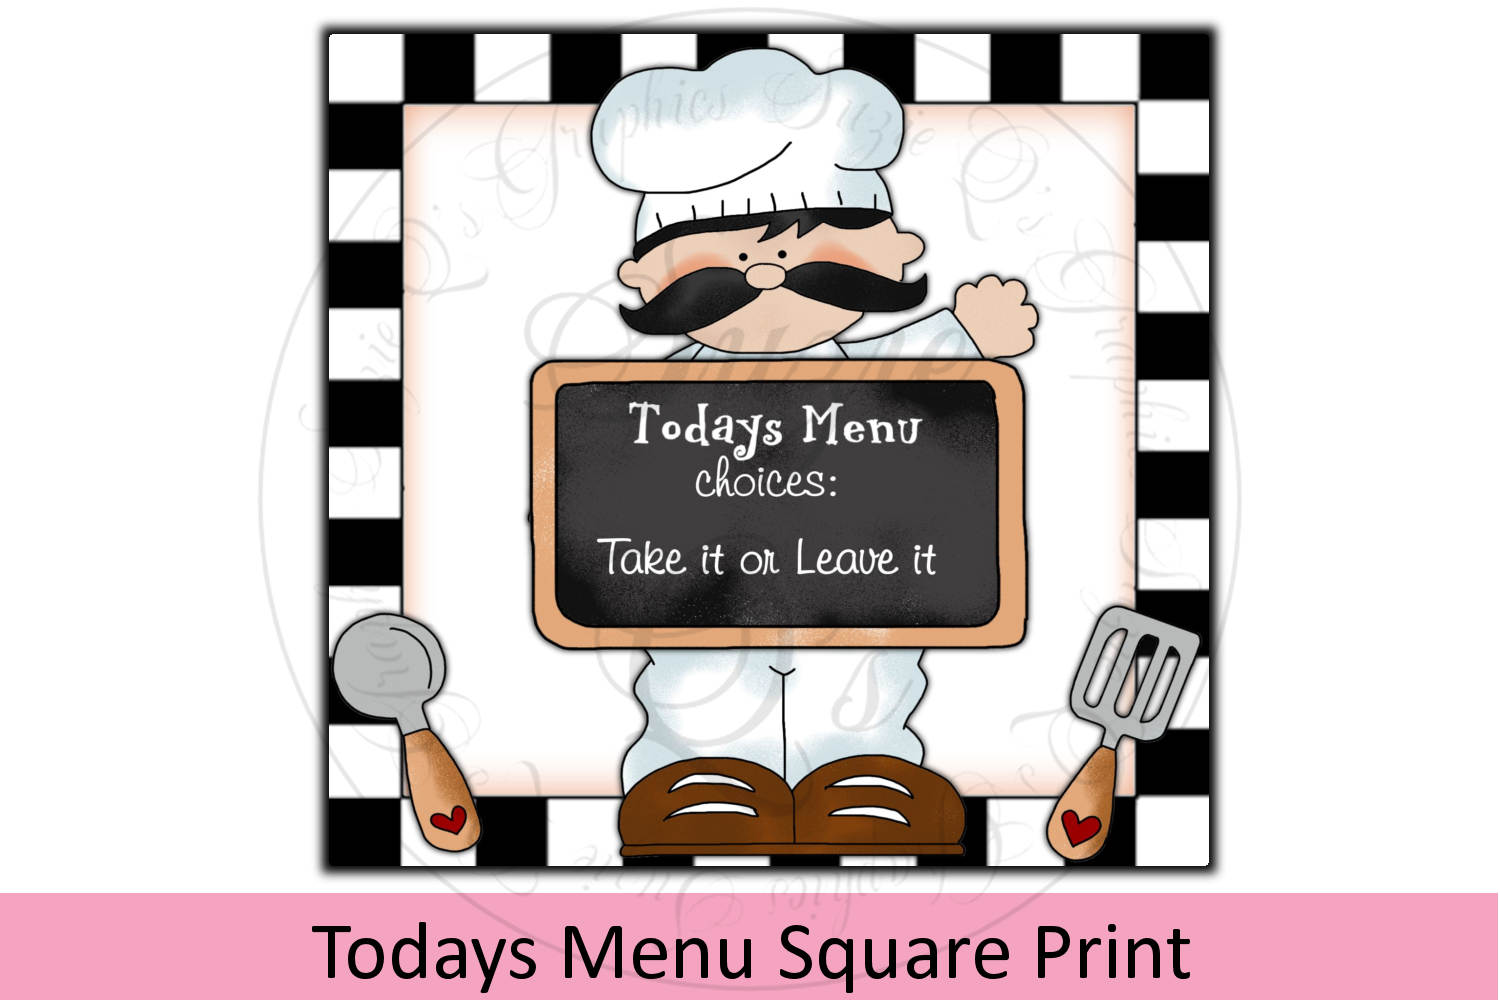 Today's Menu Square Print example image 1